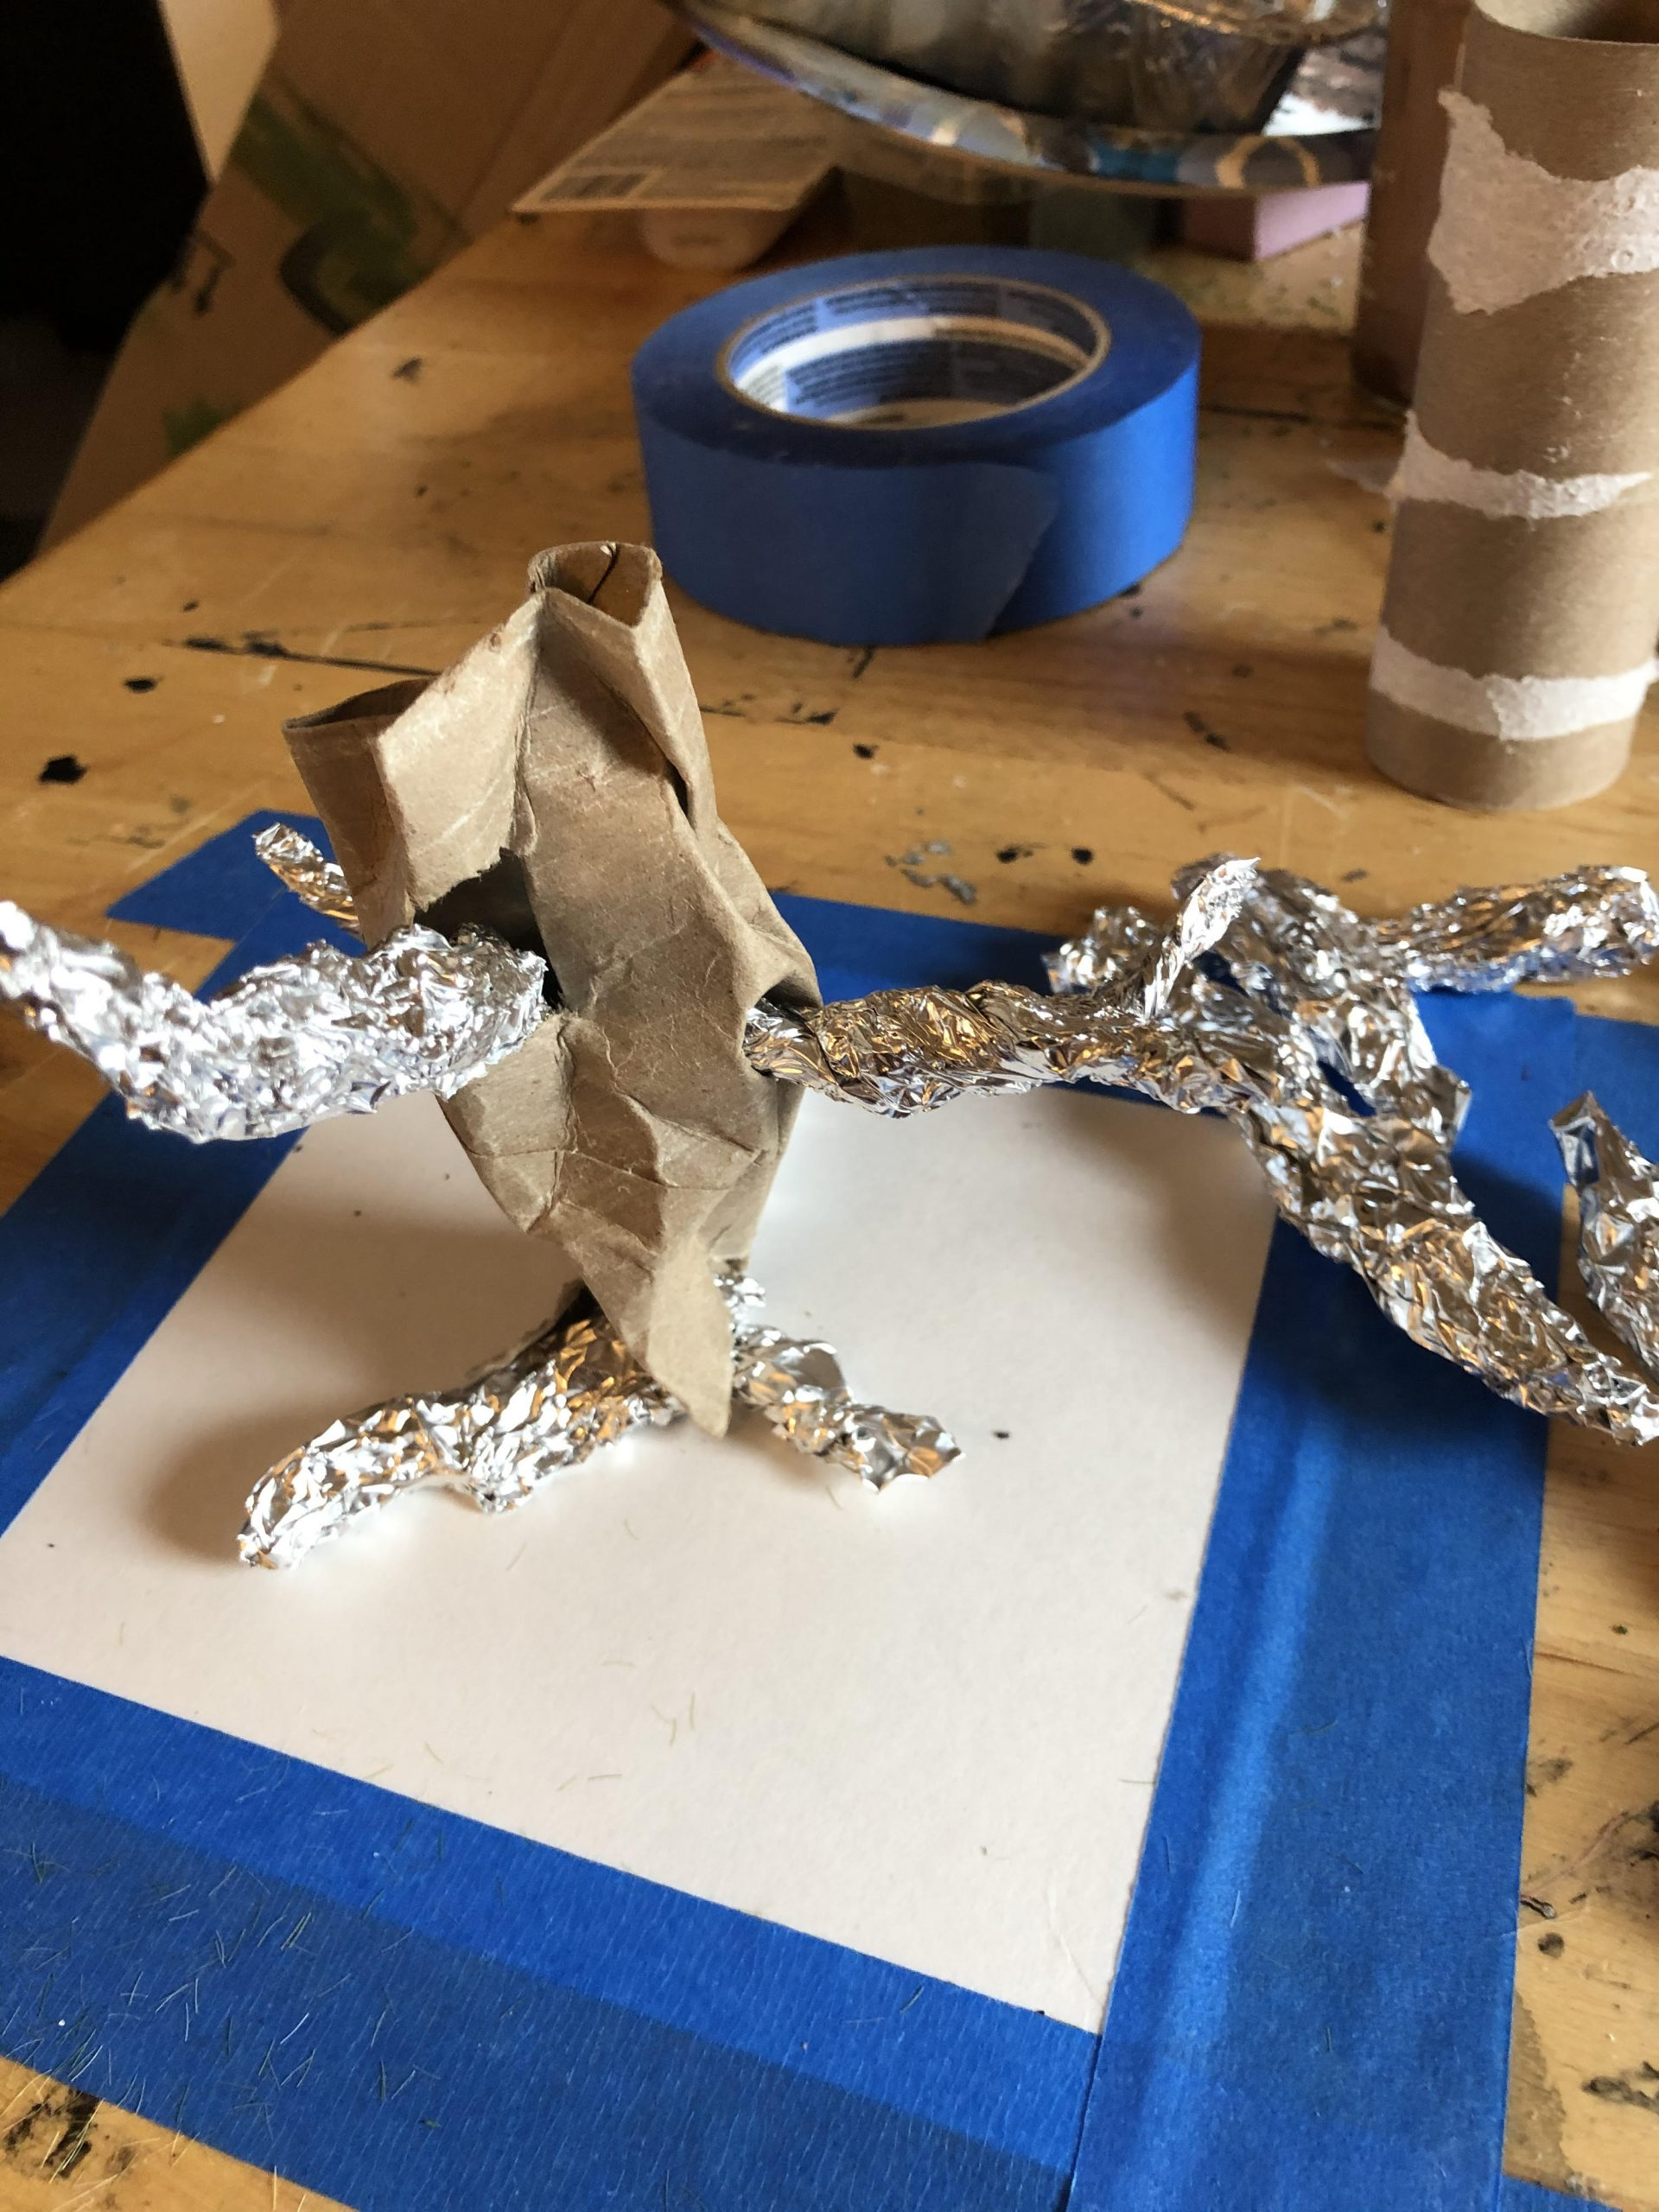 A toilet paper roll and aluminum foil, shaped into something roughly approximating the shape of a tree trunk.